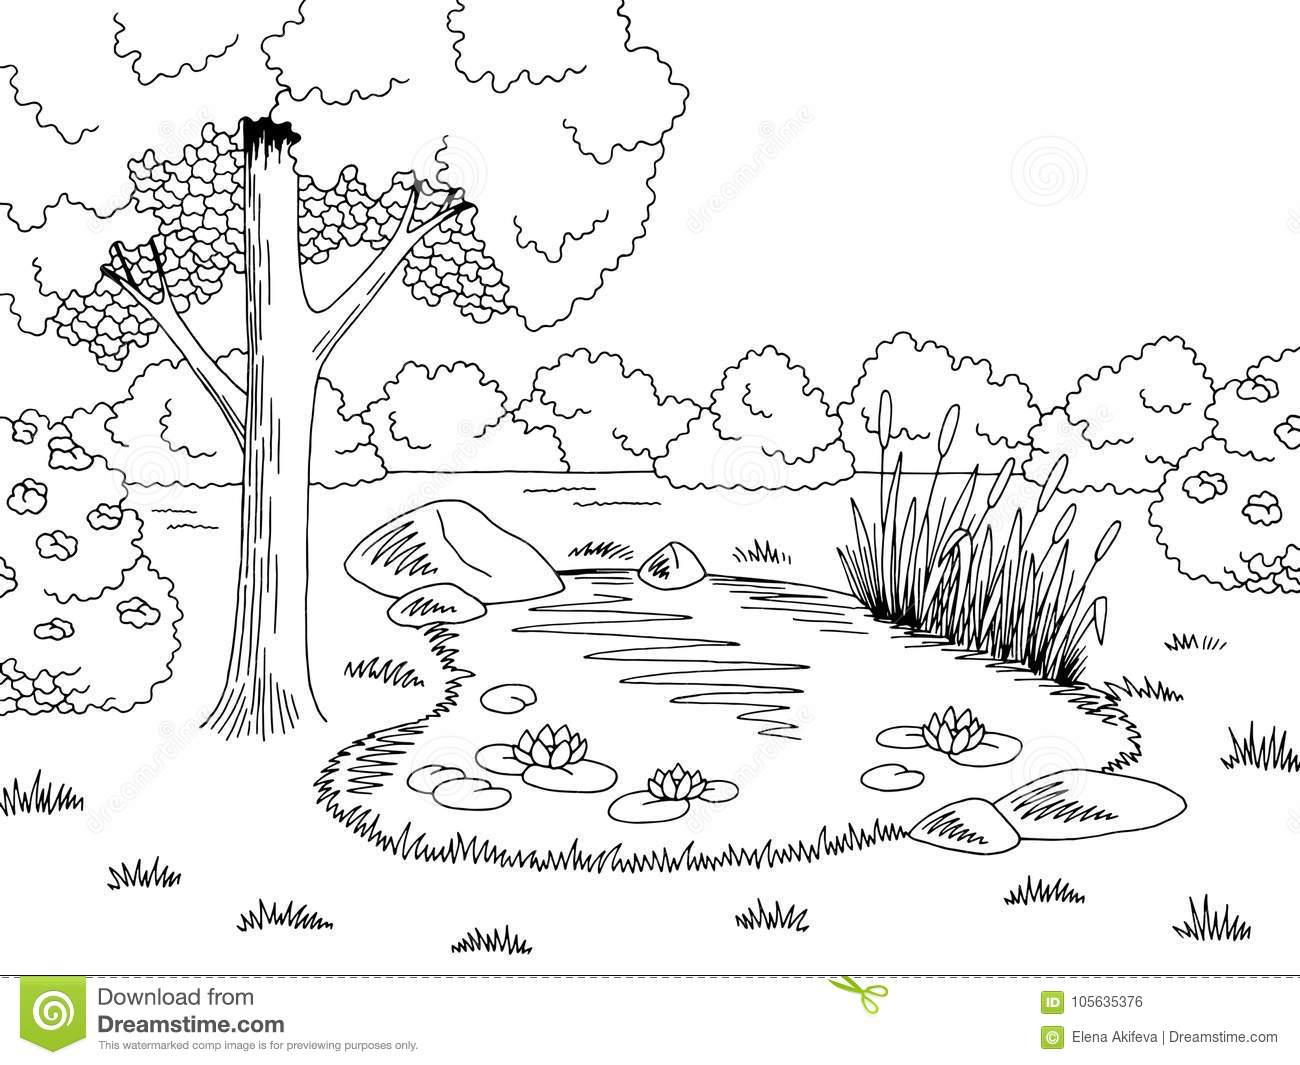 Lake black and white clipart 2 » Clipart Station.